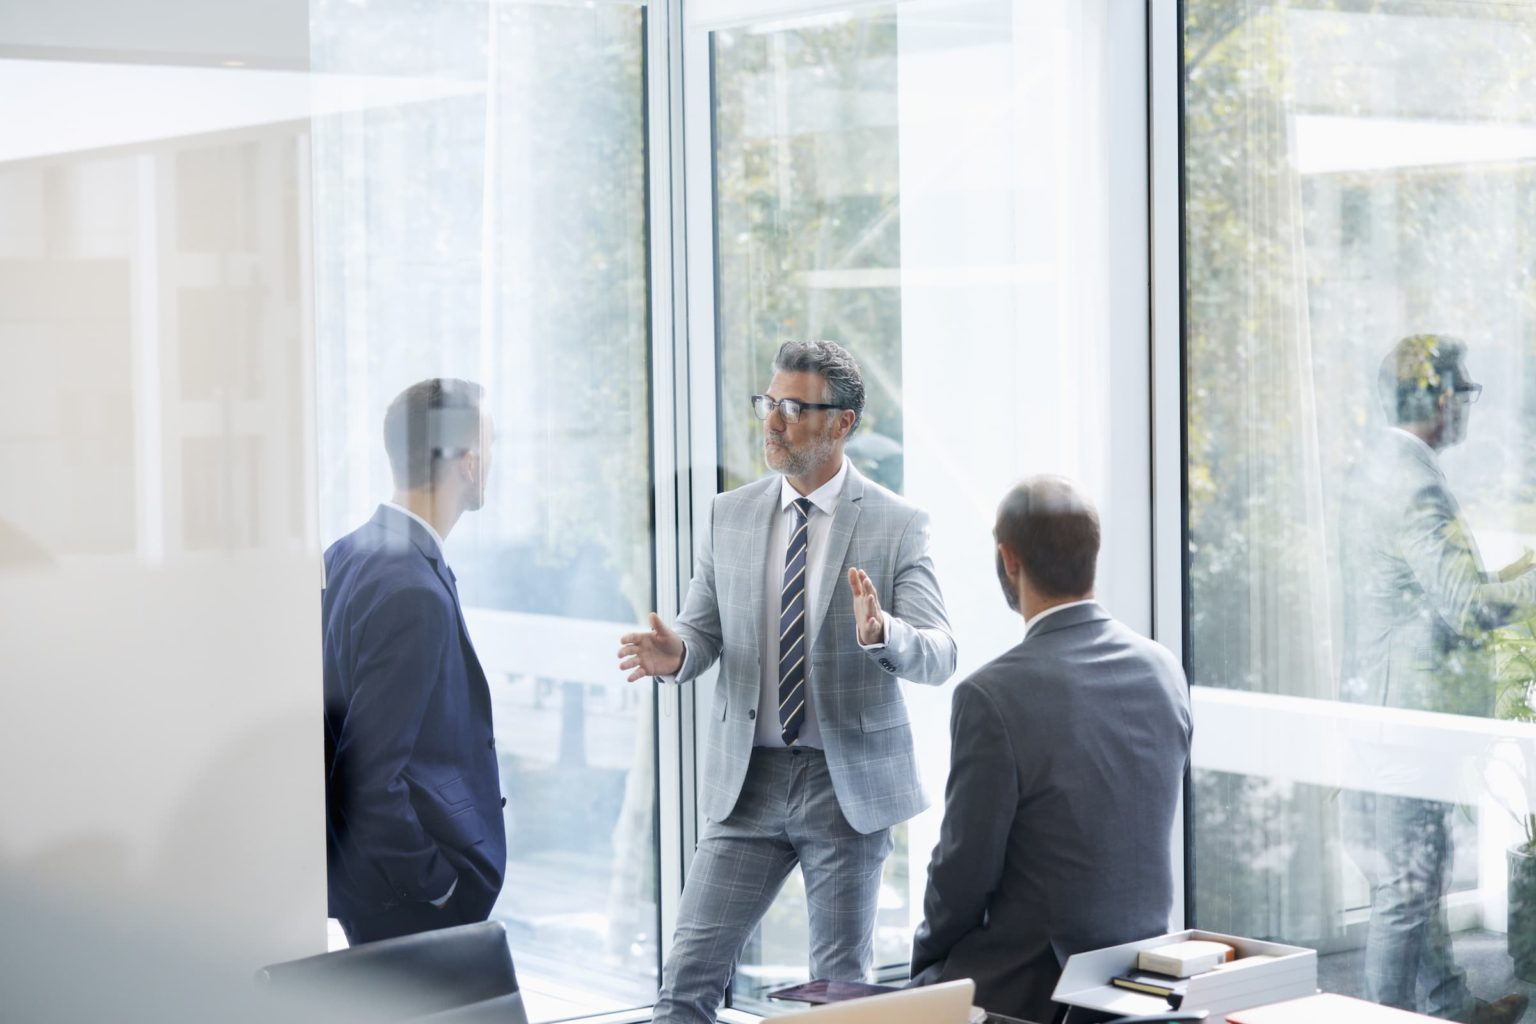 Confident businessman discussing with colleagues in meeting by window at office